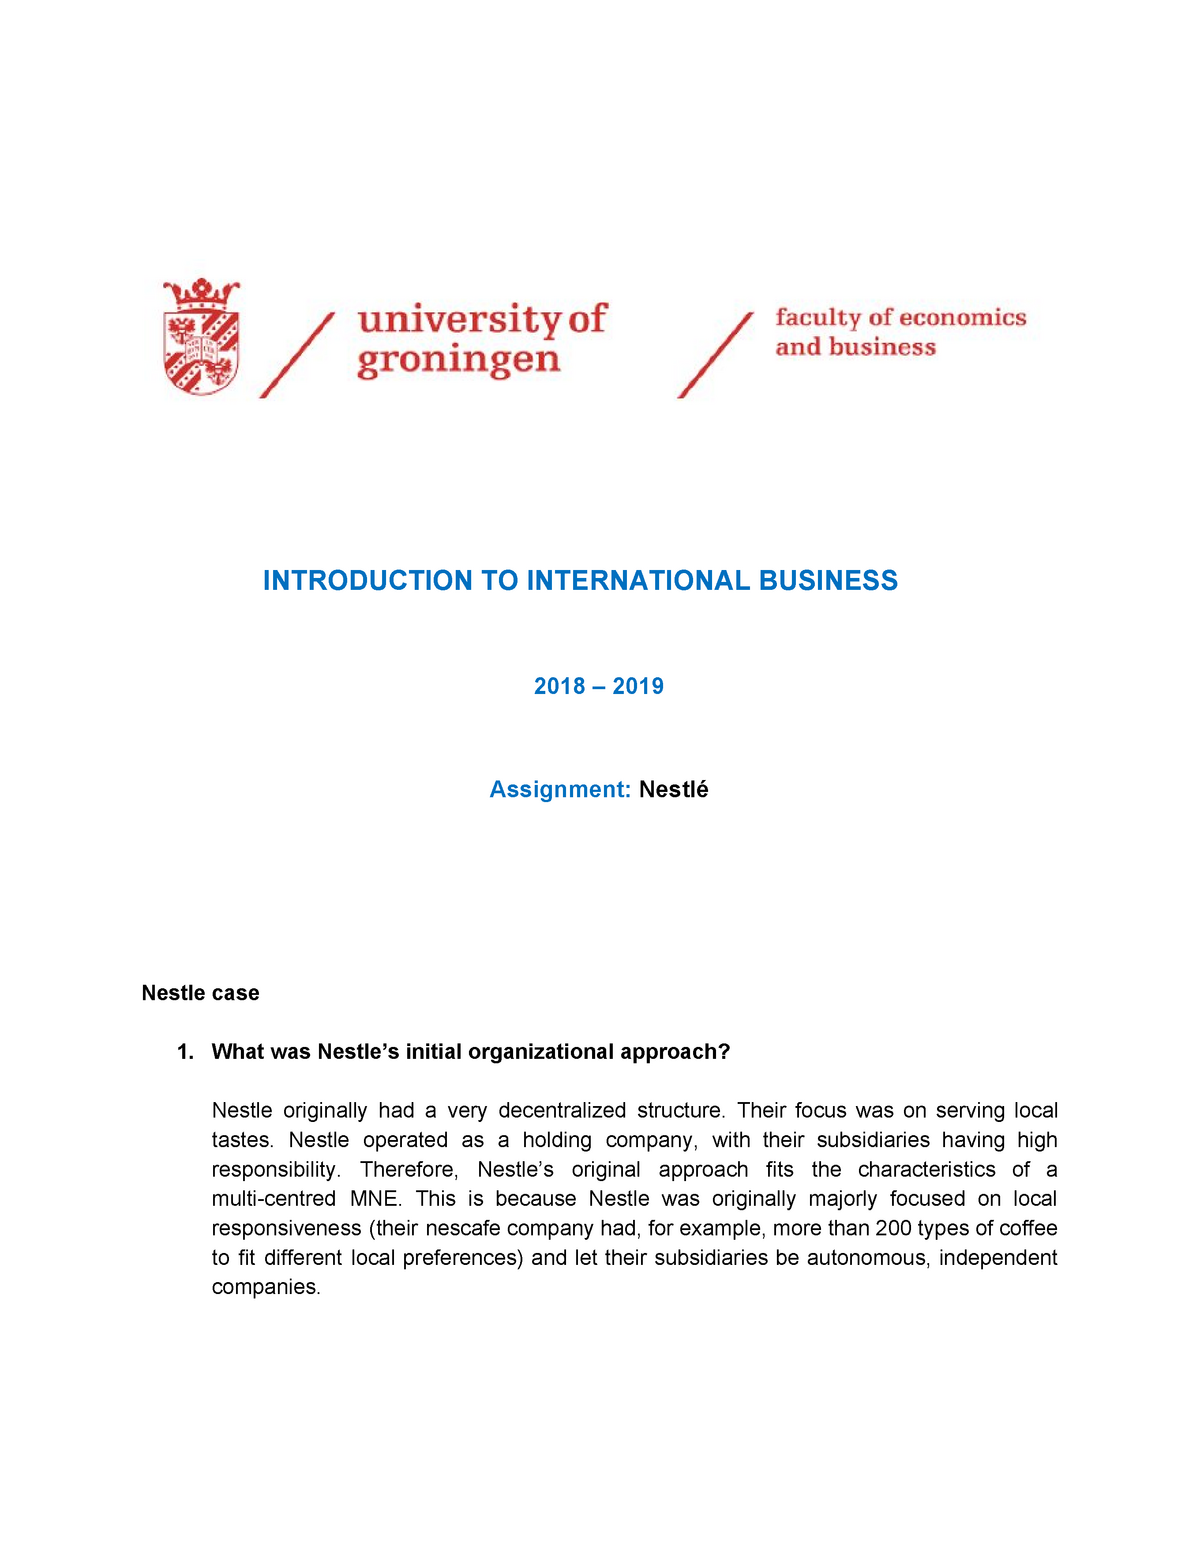 Nestle case - Introduction to International Business - RUG